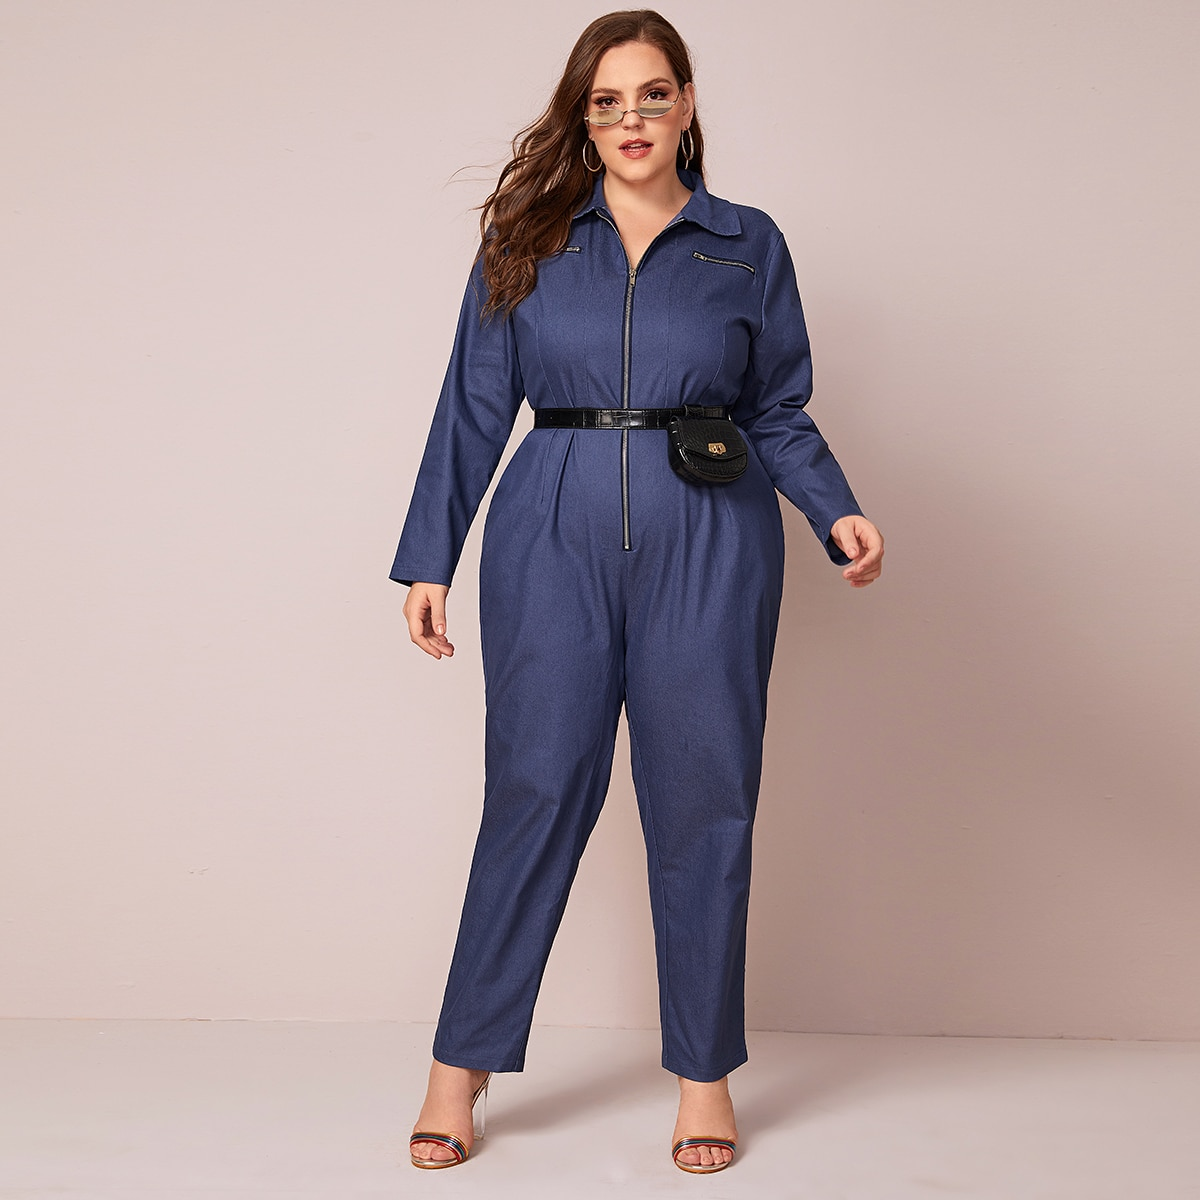 Marine Casual Vlak Grote maten: salopettes in jeans Rits